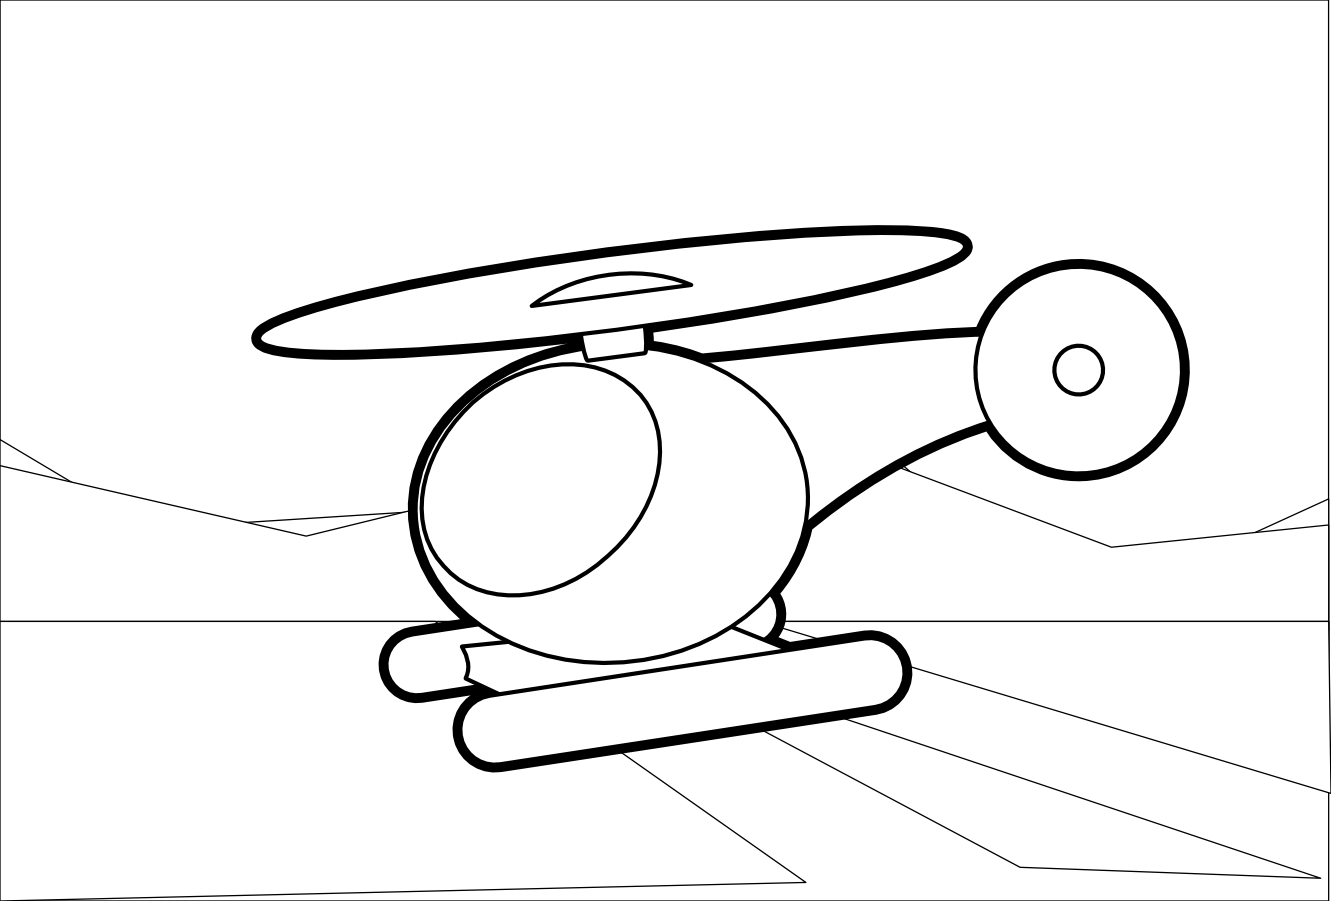 helicopter coloring page - police helicopter coloring pages clipart panda free